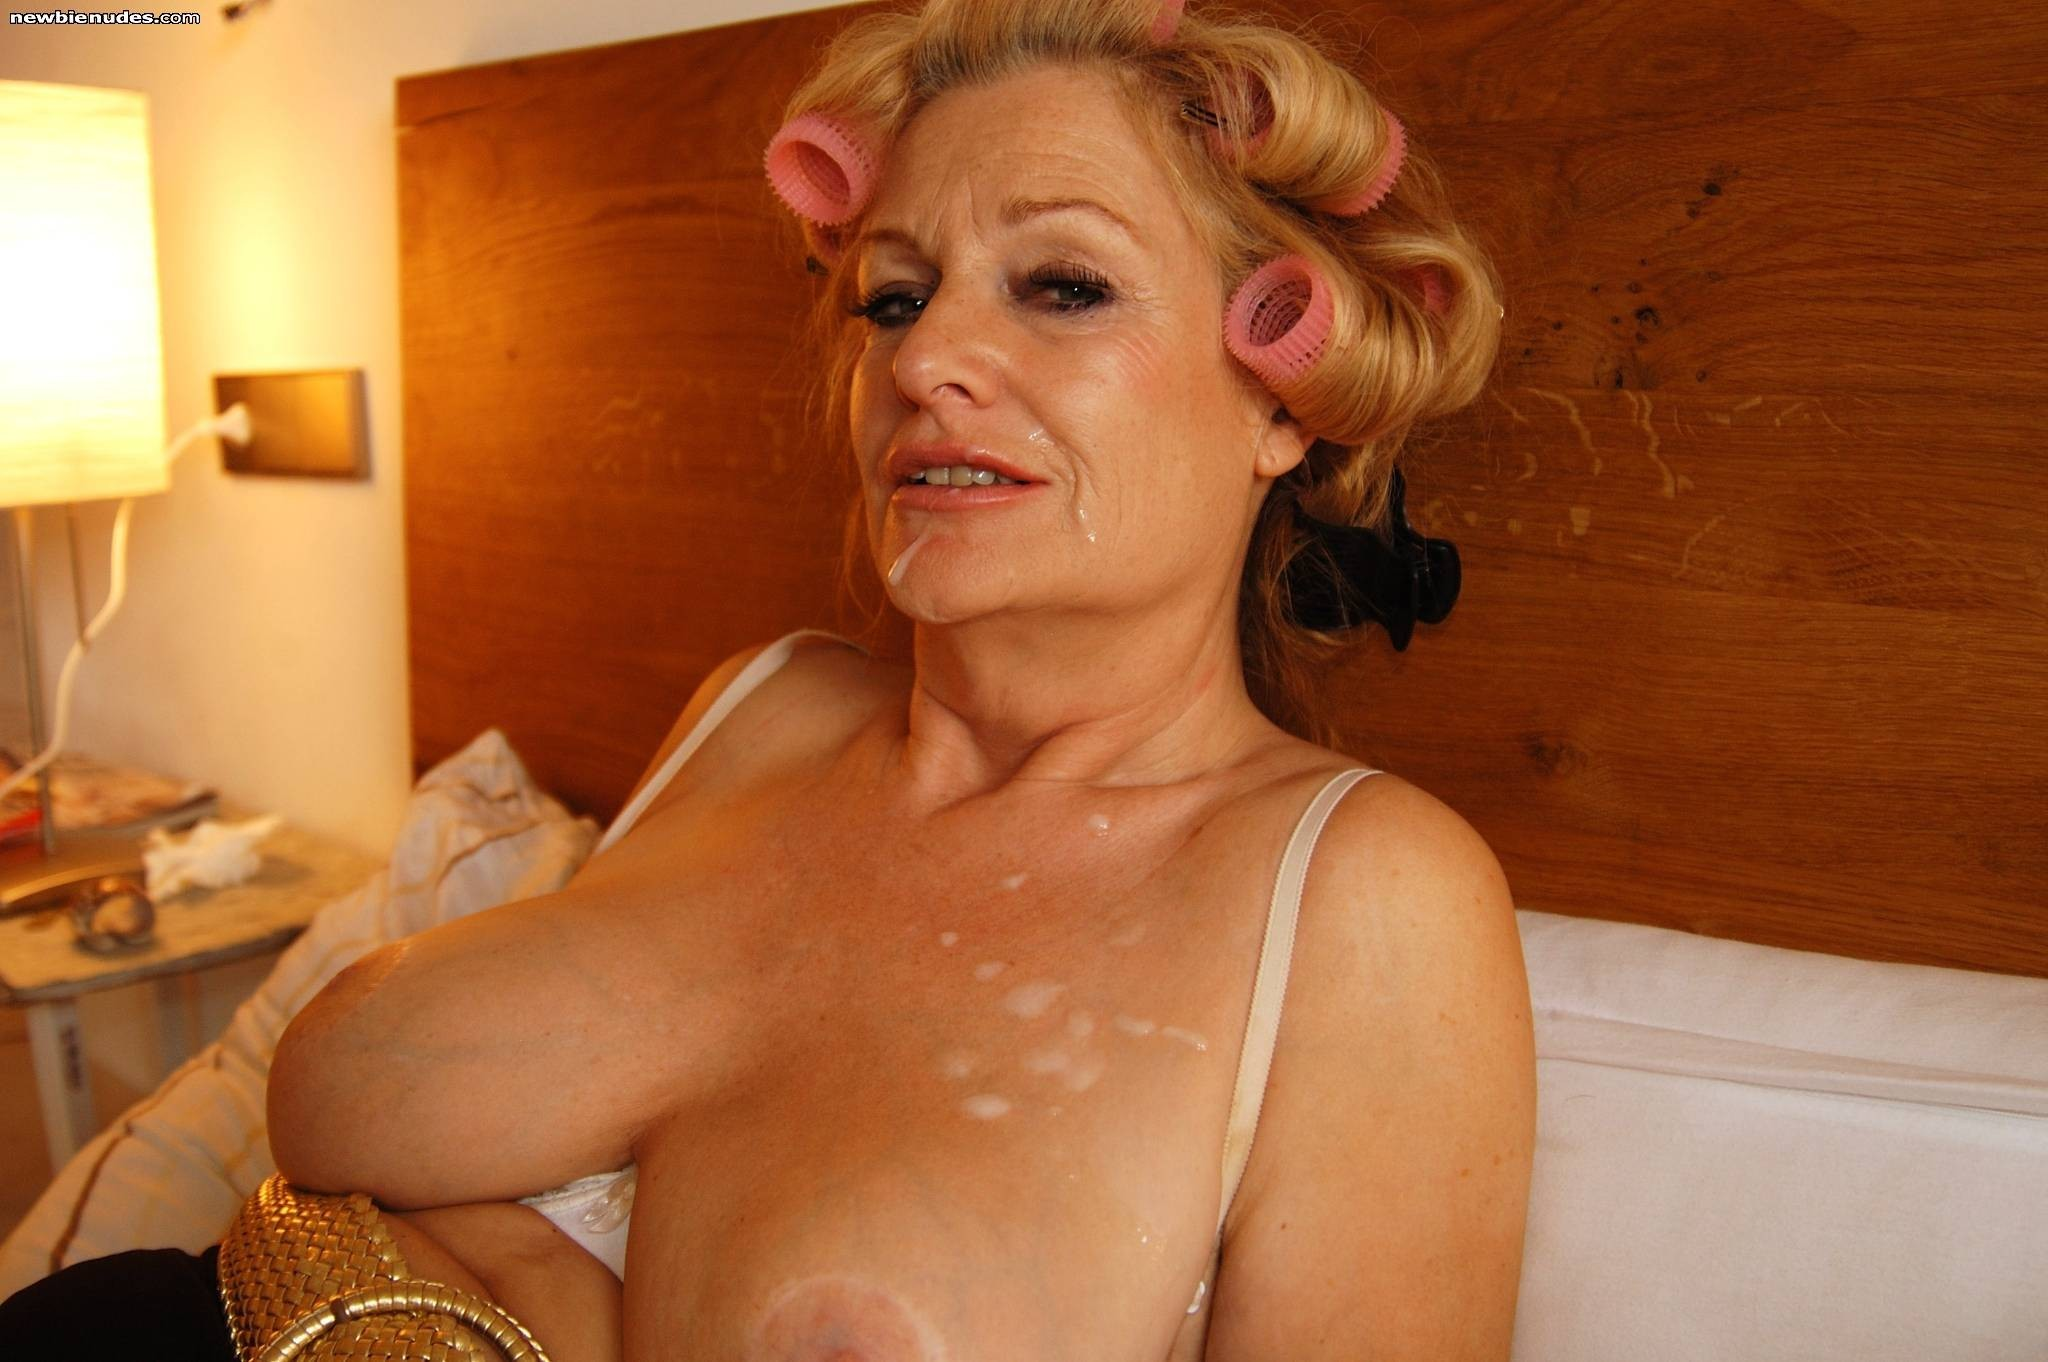 Milf hunter the naughty in rio nude